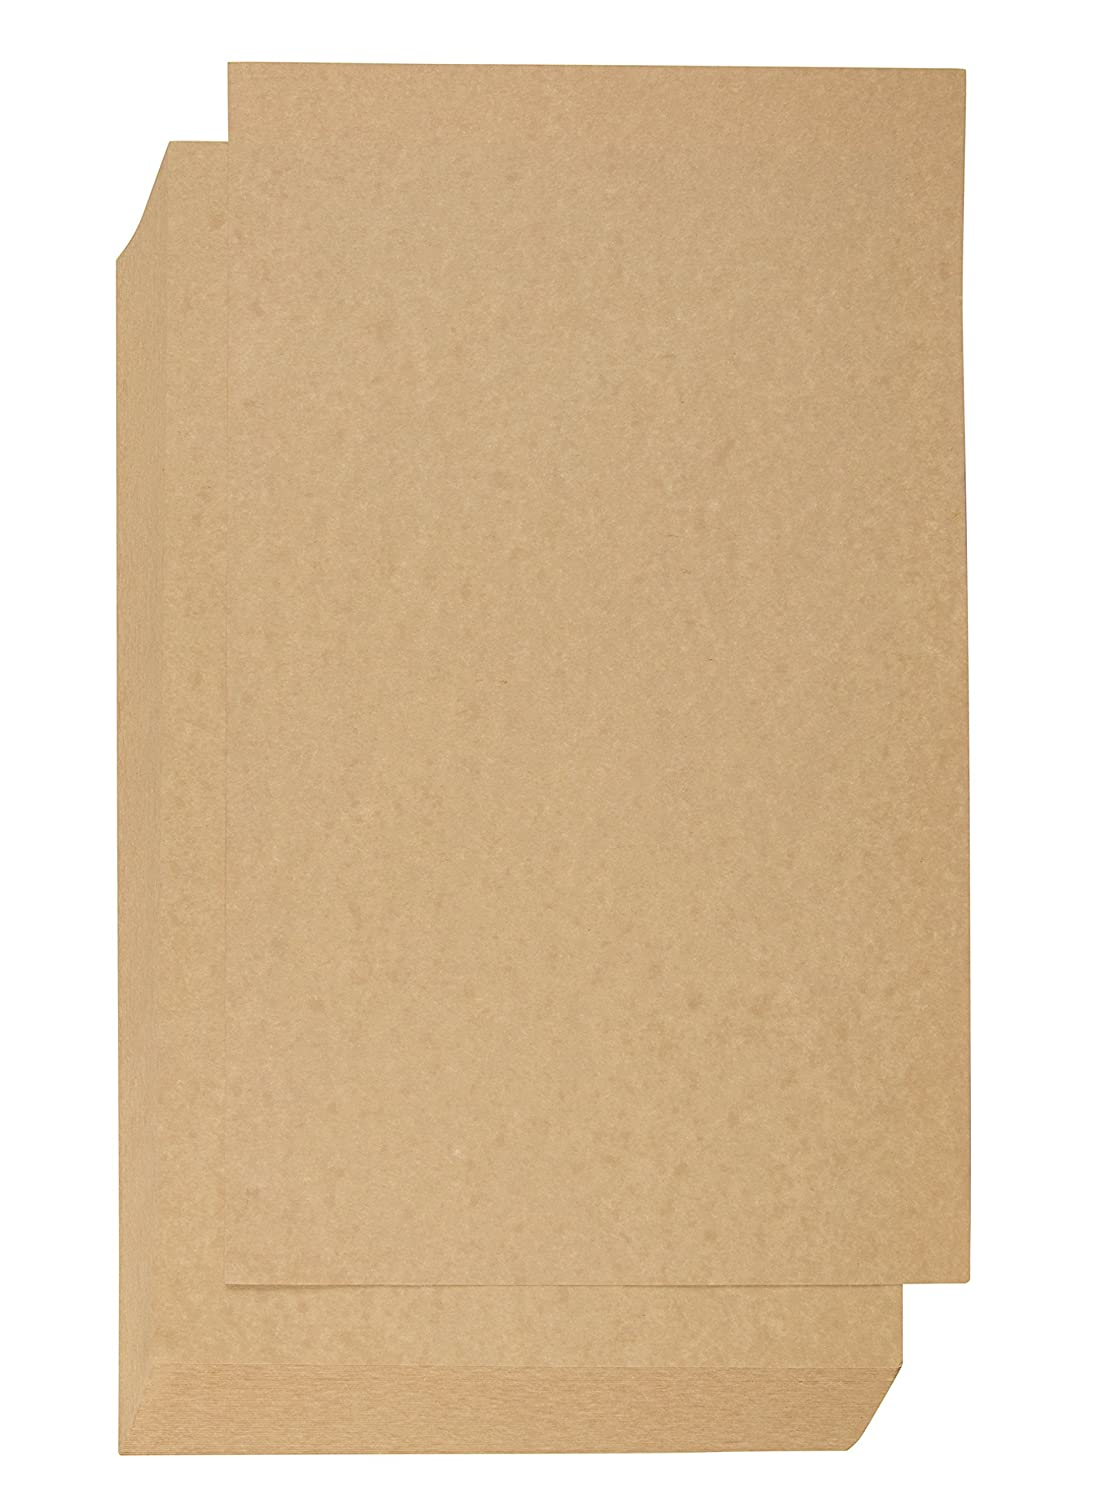 Parchment Stationery Paper - 60-Sheet Legal Size Natural Parchtone Paper, Vintage Scrapbook Cardstock Paper for Menu, Program, Document, 180GSM, Gold, 8.5 x 14 inches Juvale